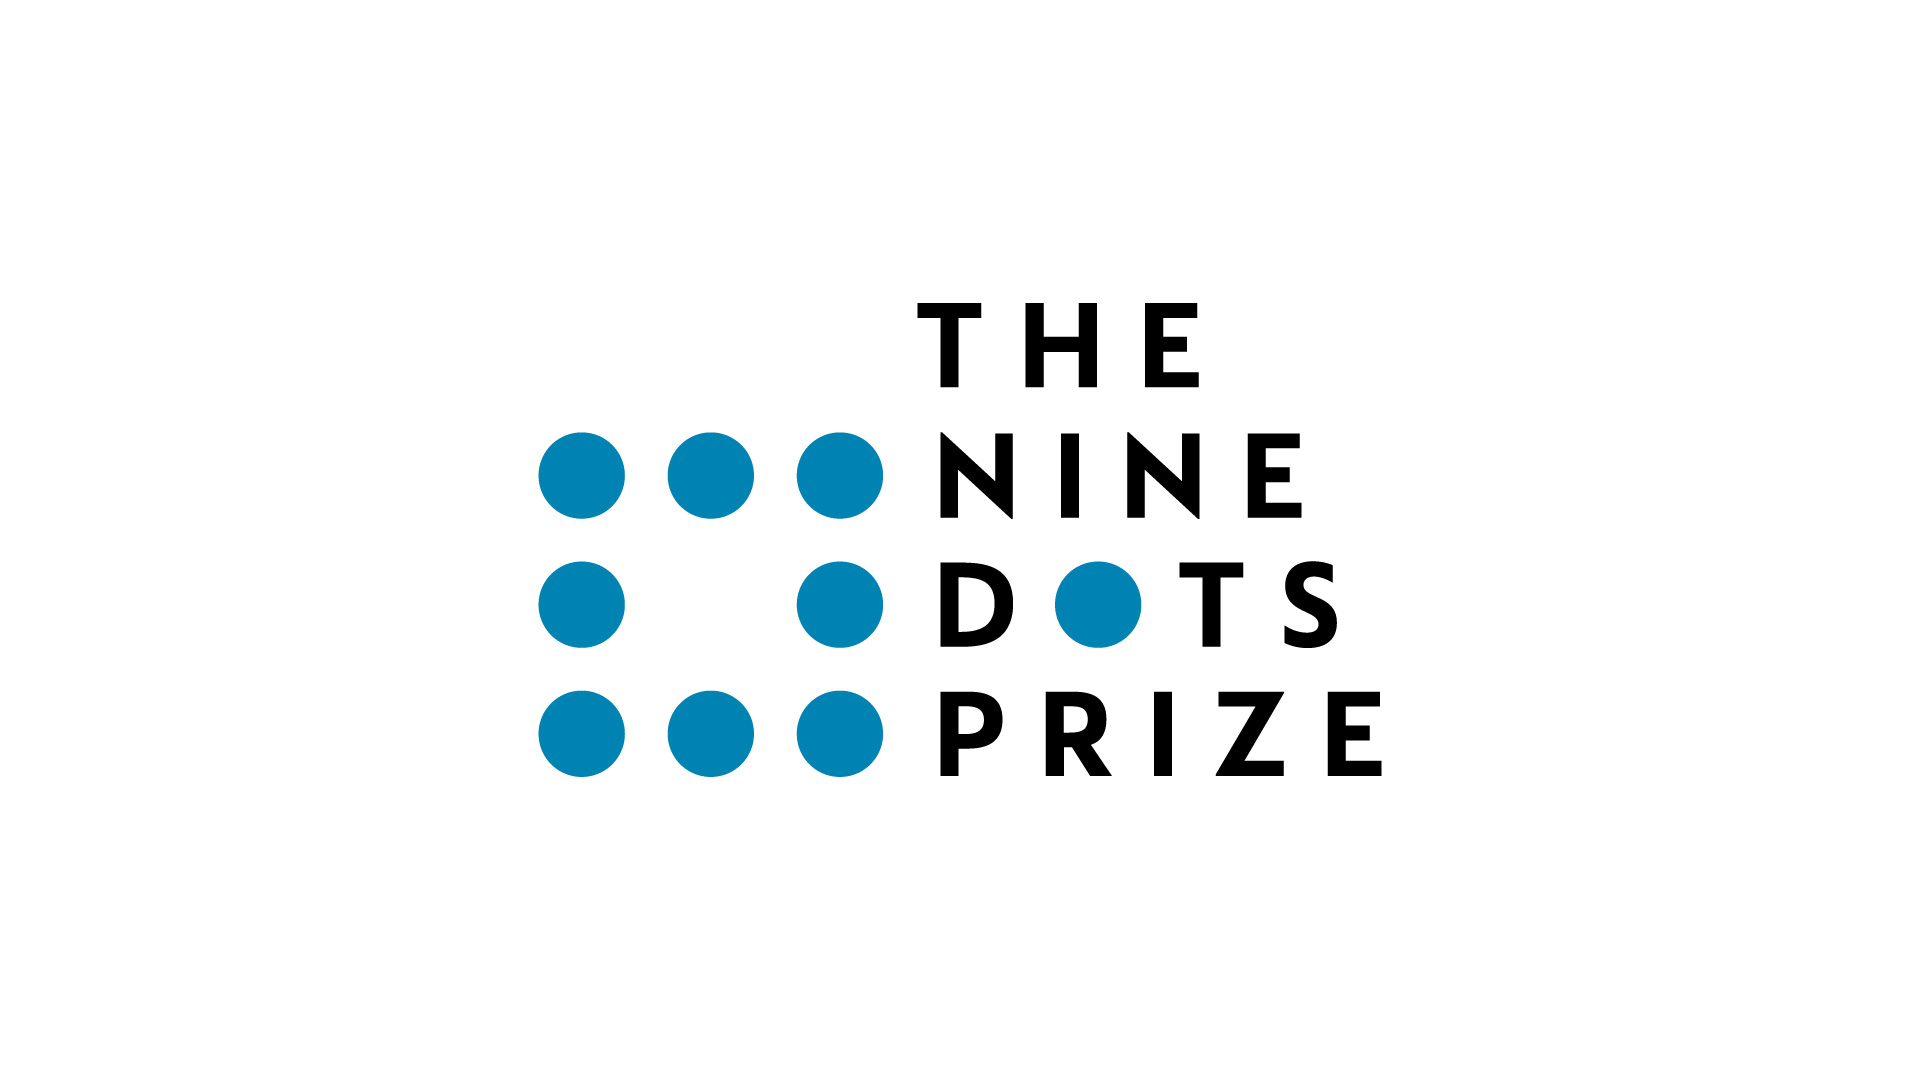 Our new logo for The Nine Dots Prize